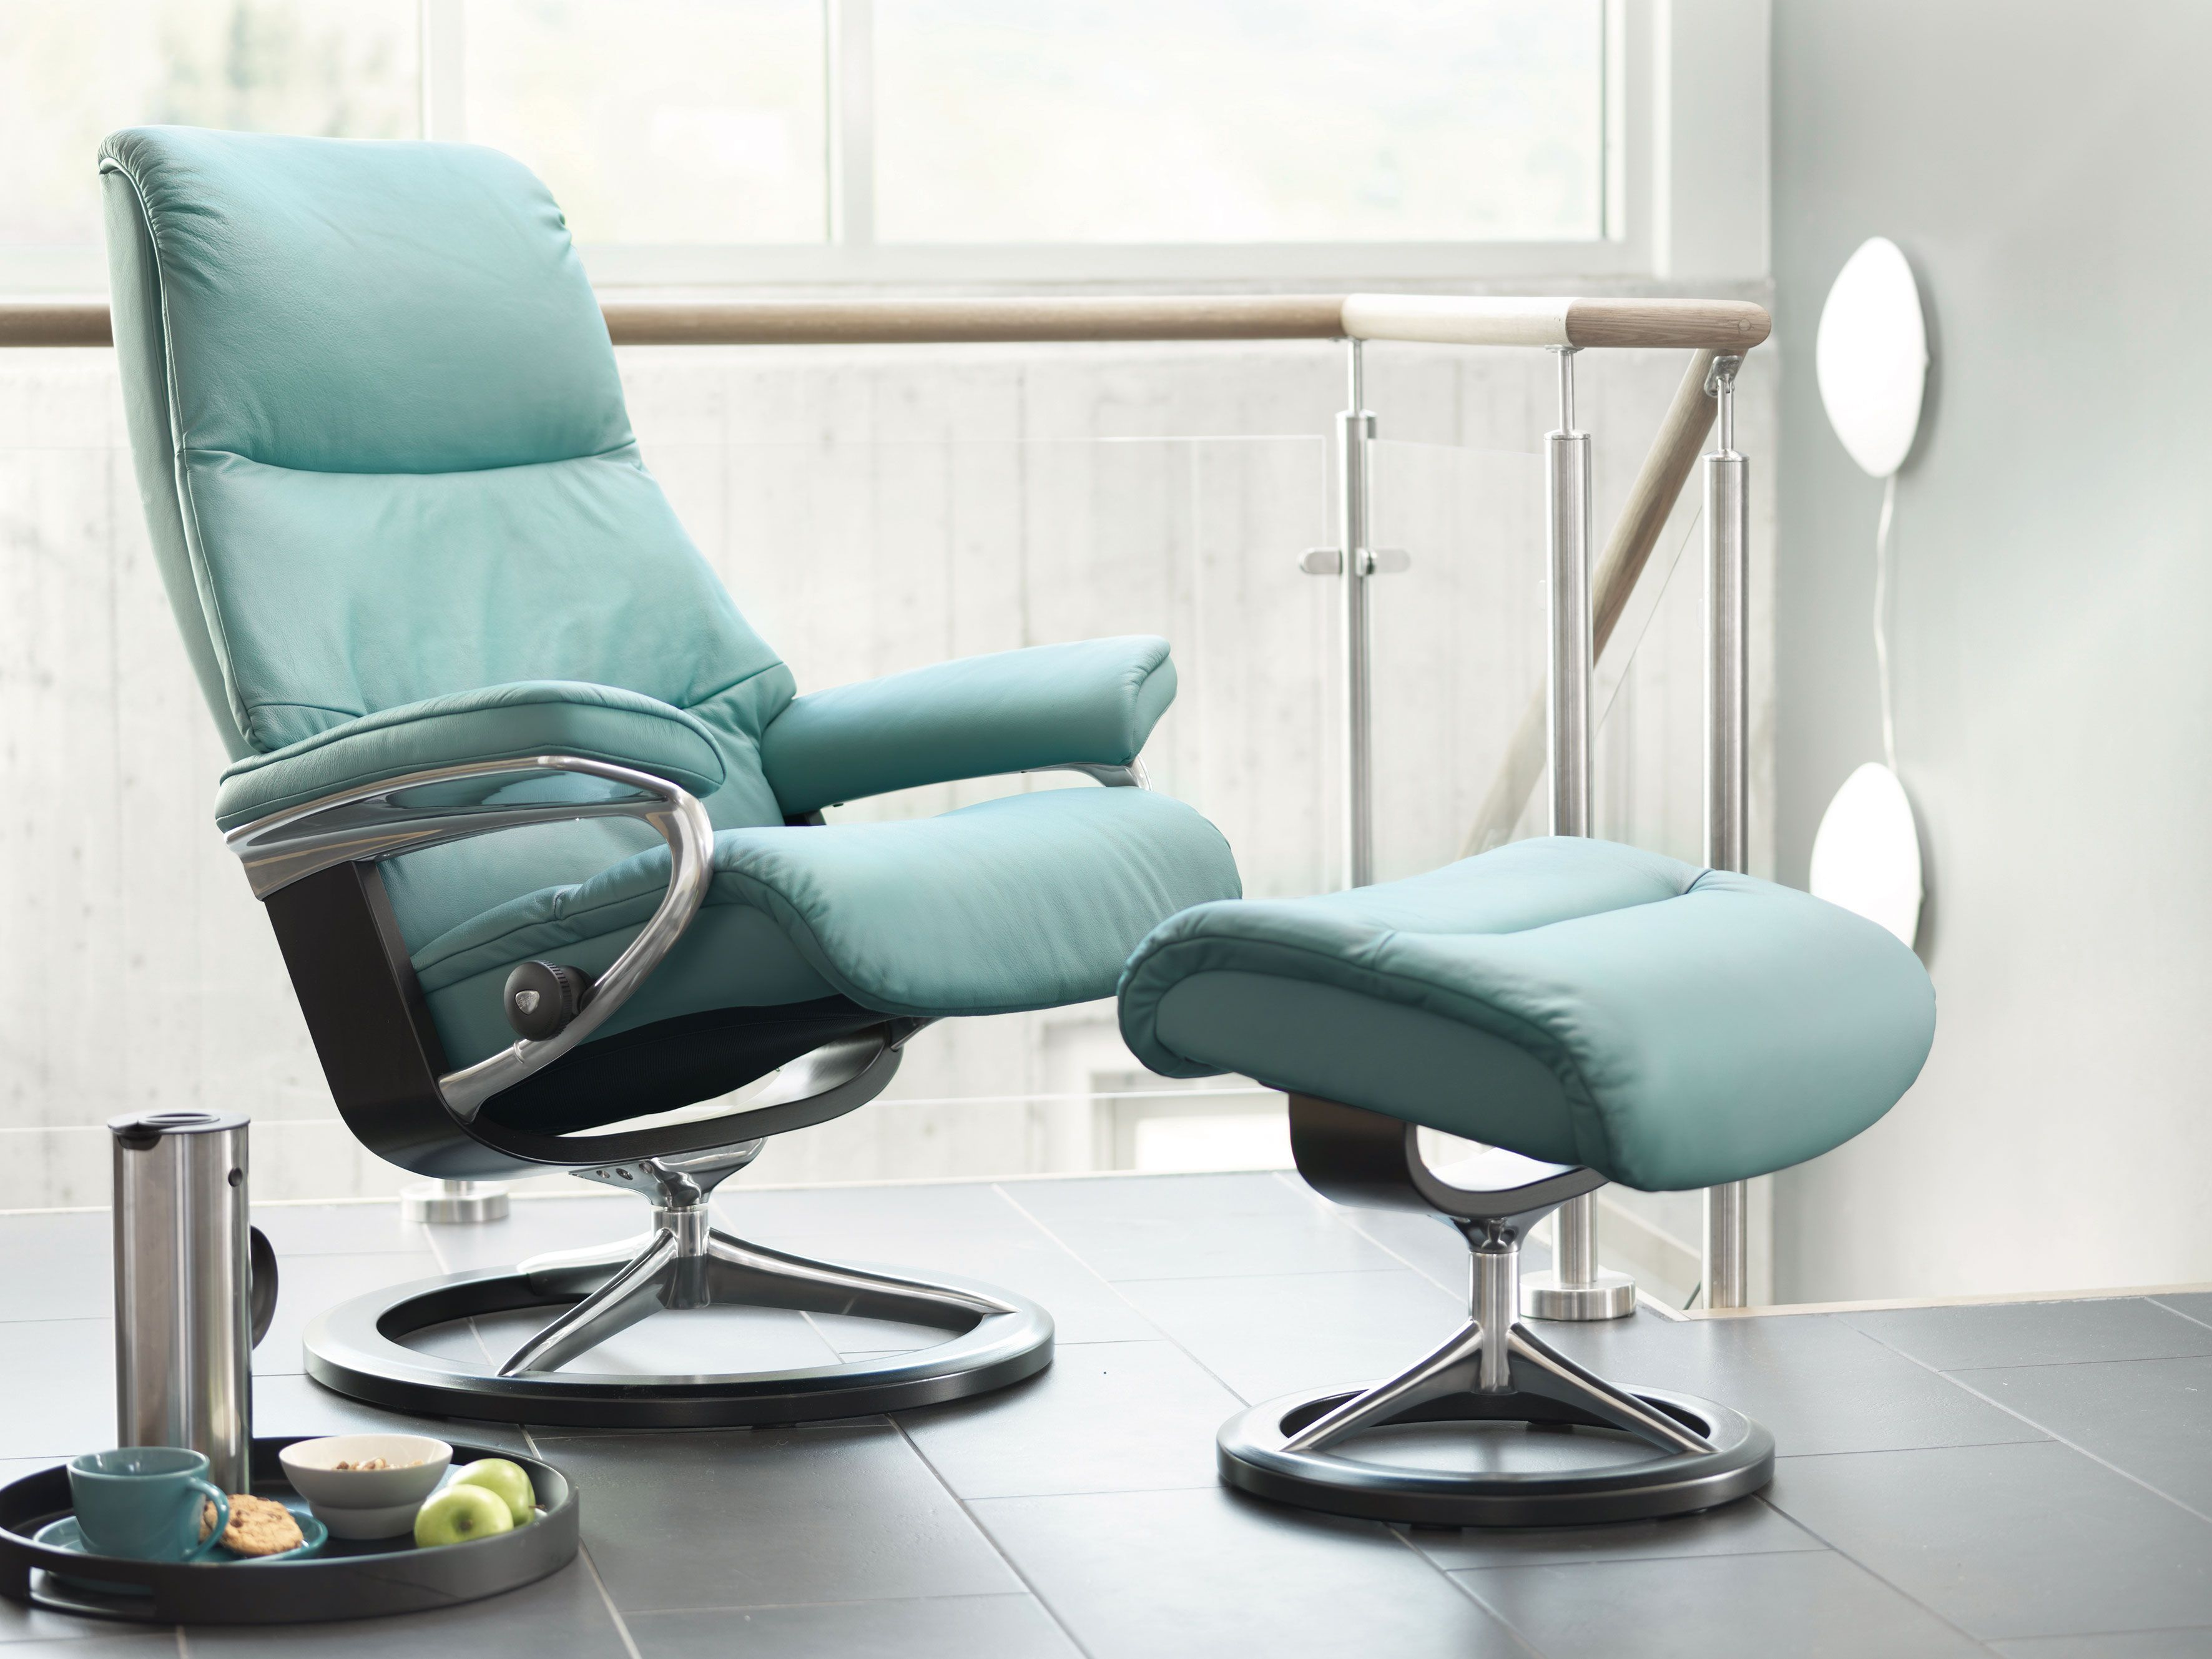 stressless chair sale stool online india ekorness the view check out reid s fine furnishing fall home running through october 16th